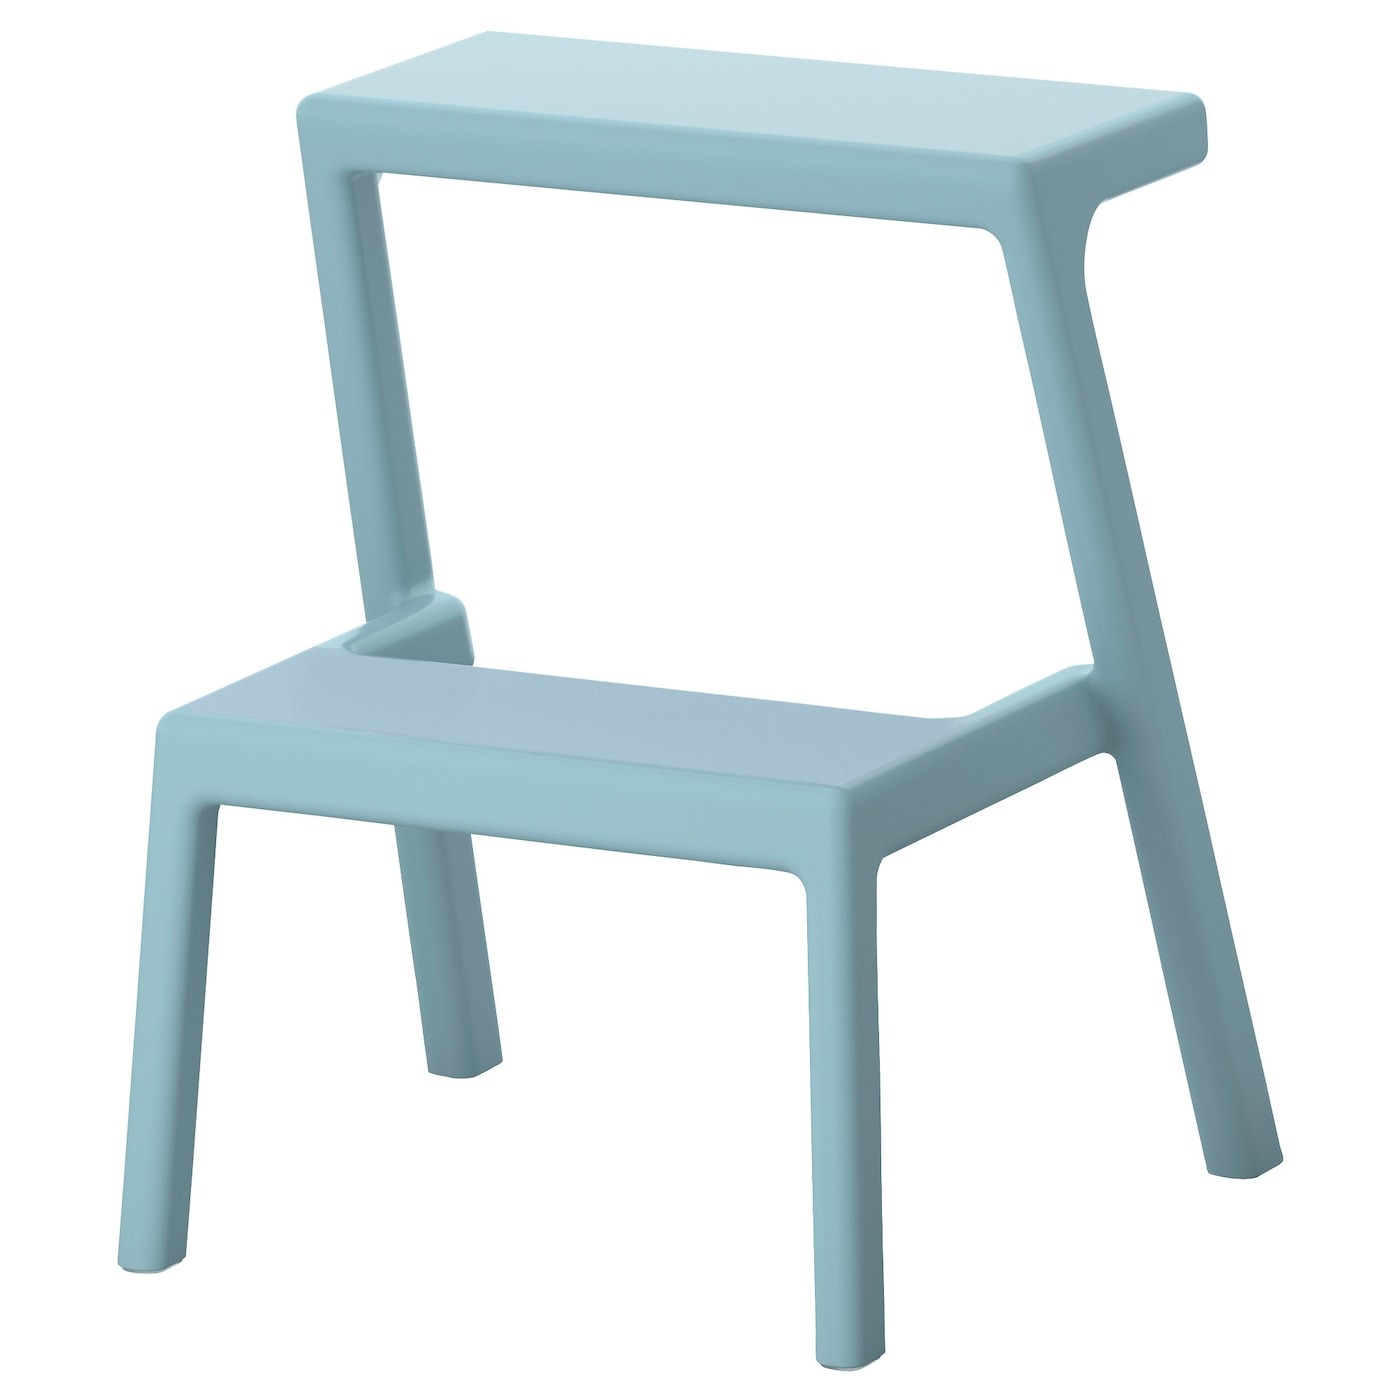 IKEA MÄSTERBY step stool Stackable so you can keep several on hand without taking more  sc 1 st  Ikea & MÄSTERBY Step stool Light blue - IKEA islam-shia.org